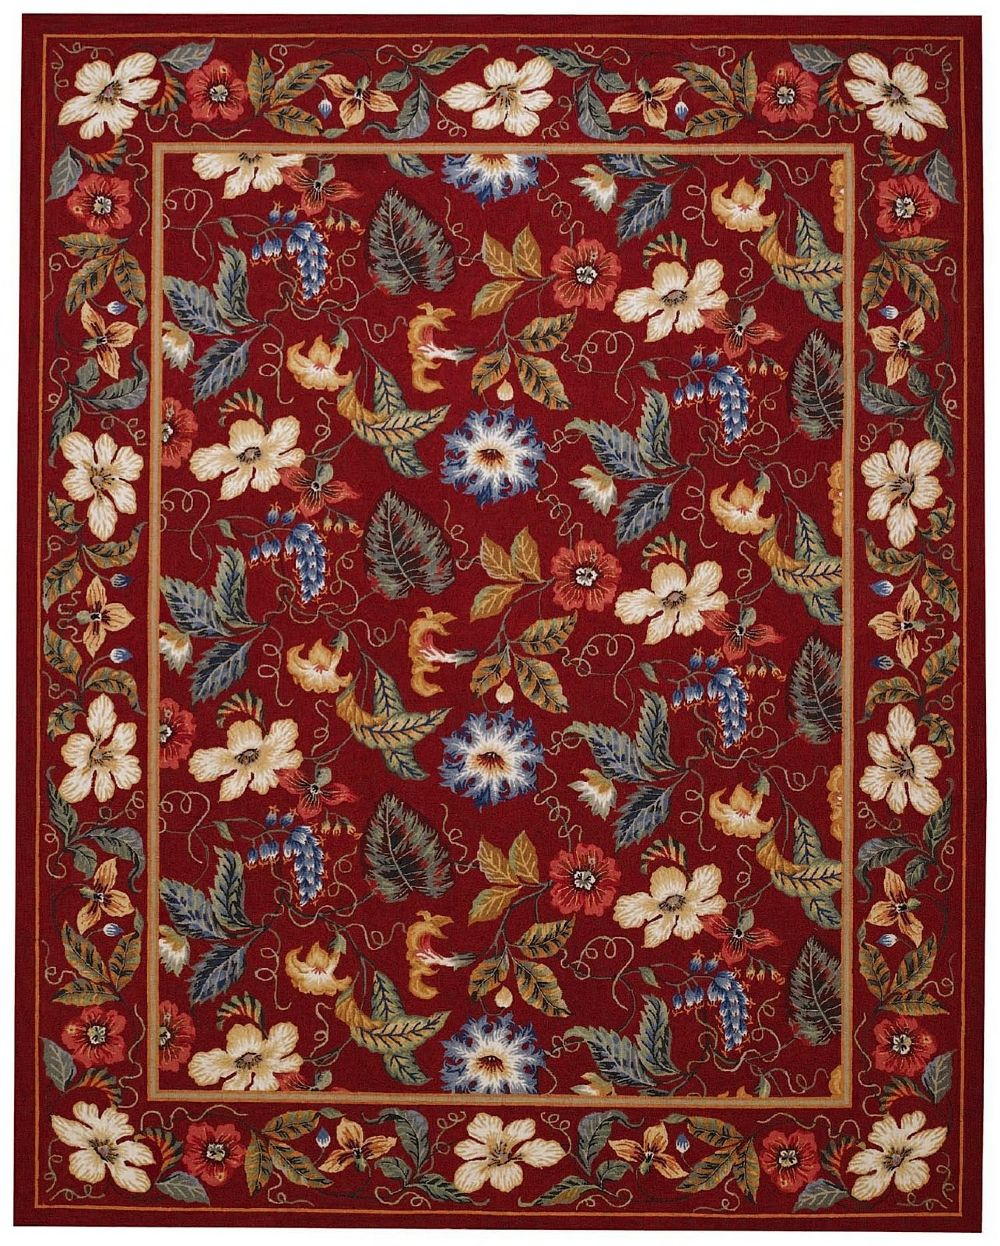 capel floral garden transitional area rug collection